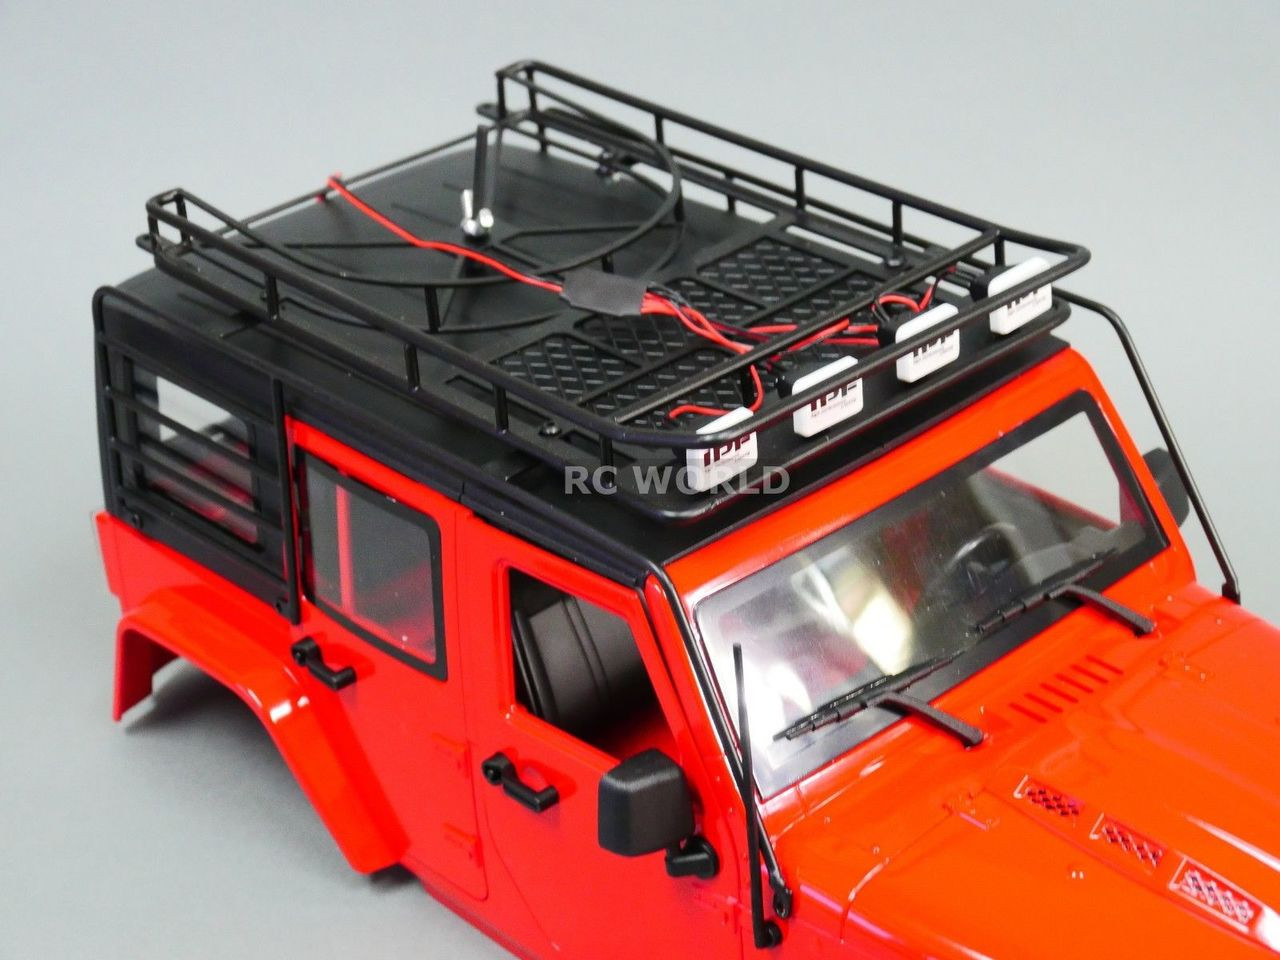 RC Scale JEEP Body  METAL CAGE ROOF RACK For Wrangler Body W// LED PODS HELLA